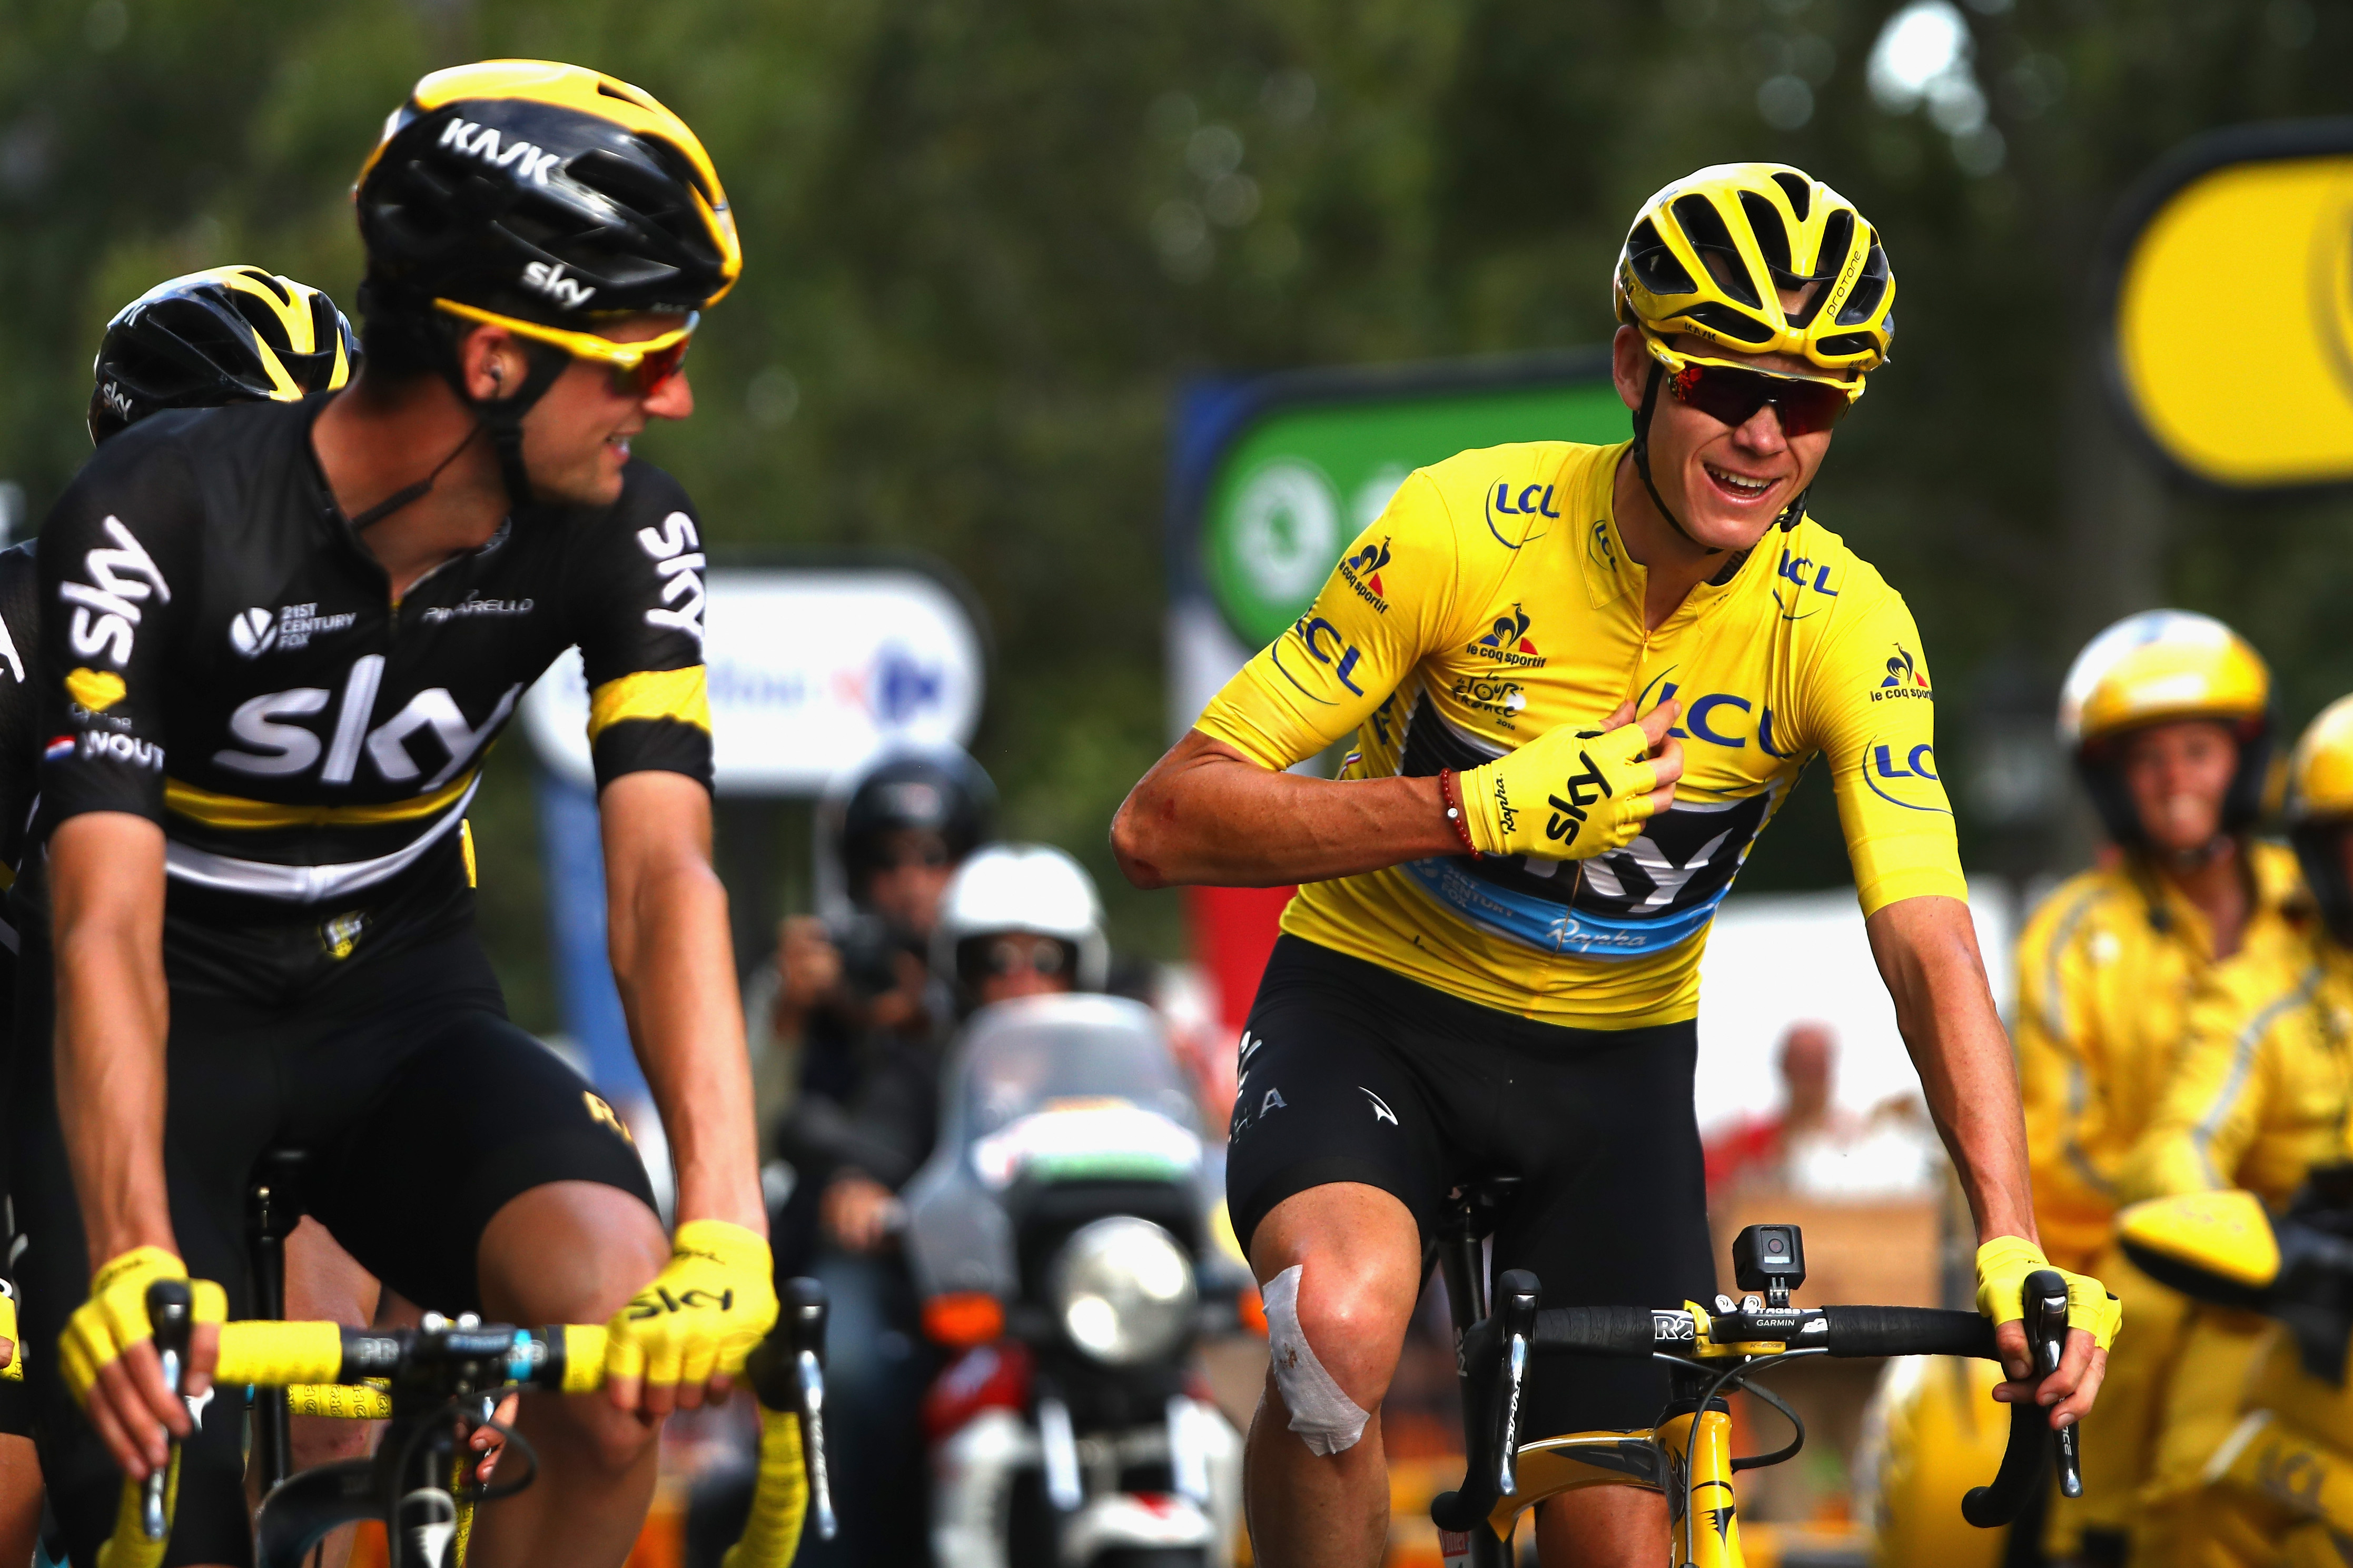 The 2017 Tour de France will be stupid, and that may not be bad